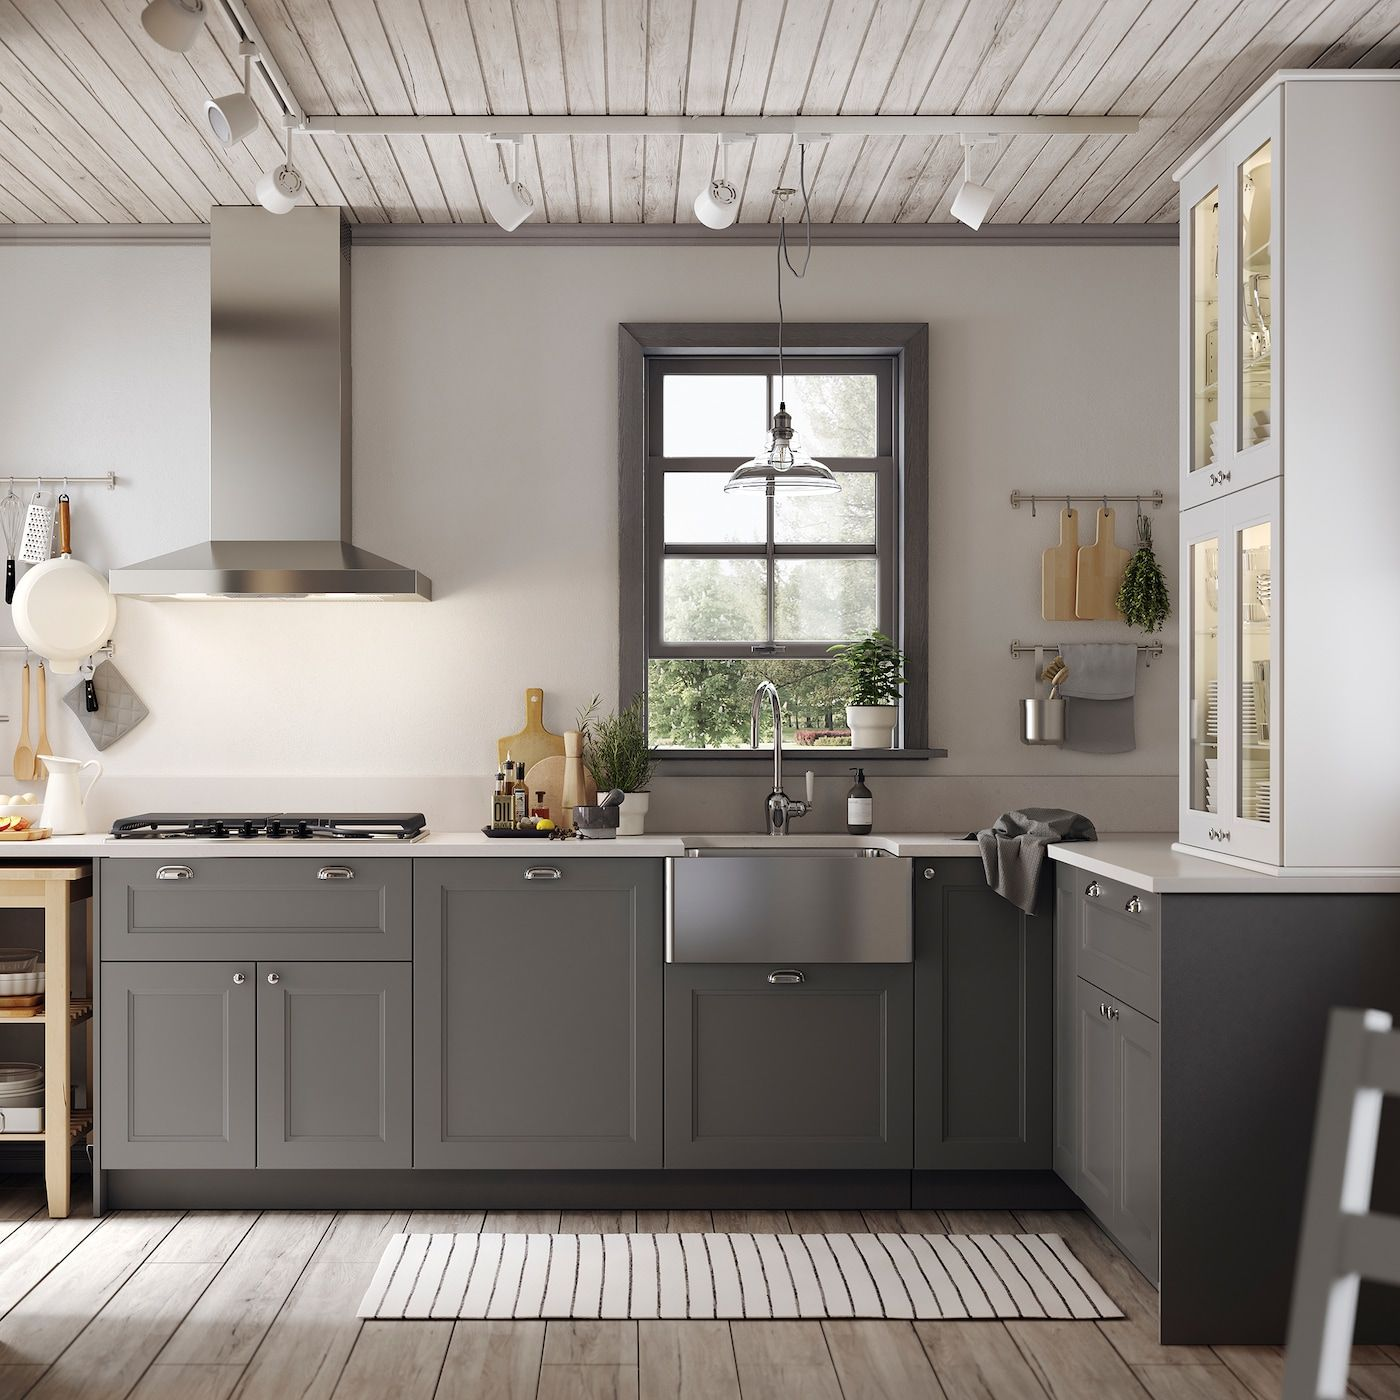 Kitchen dreams that are refreshingly affordable in 2020